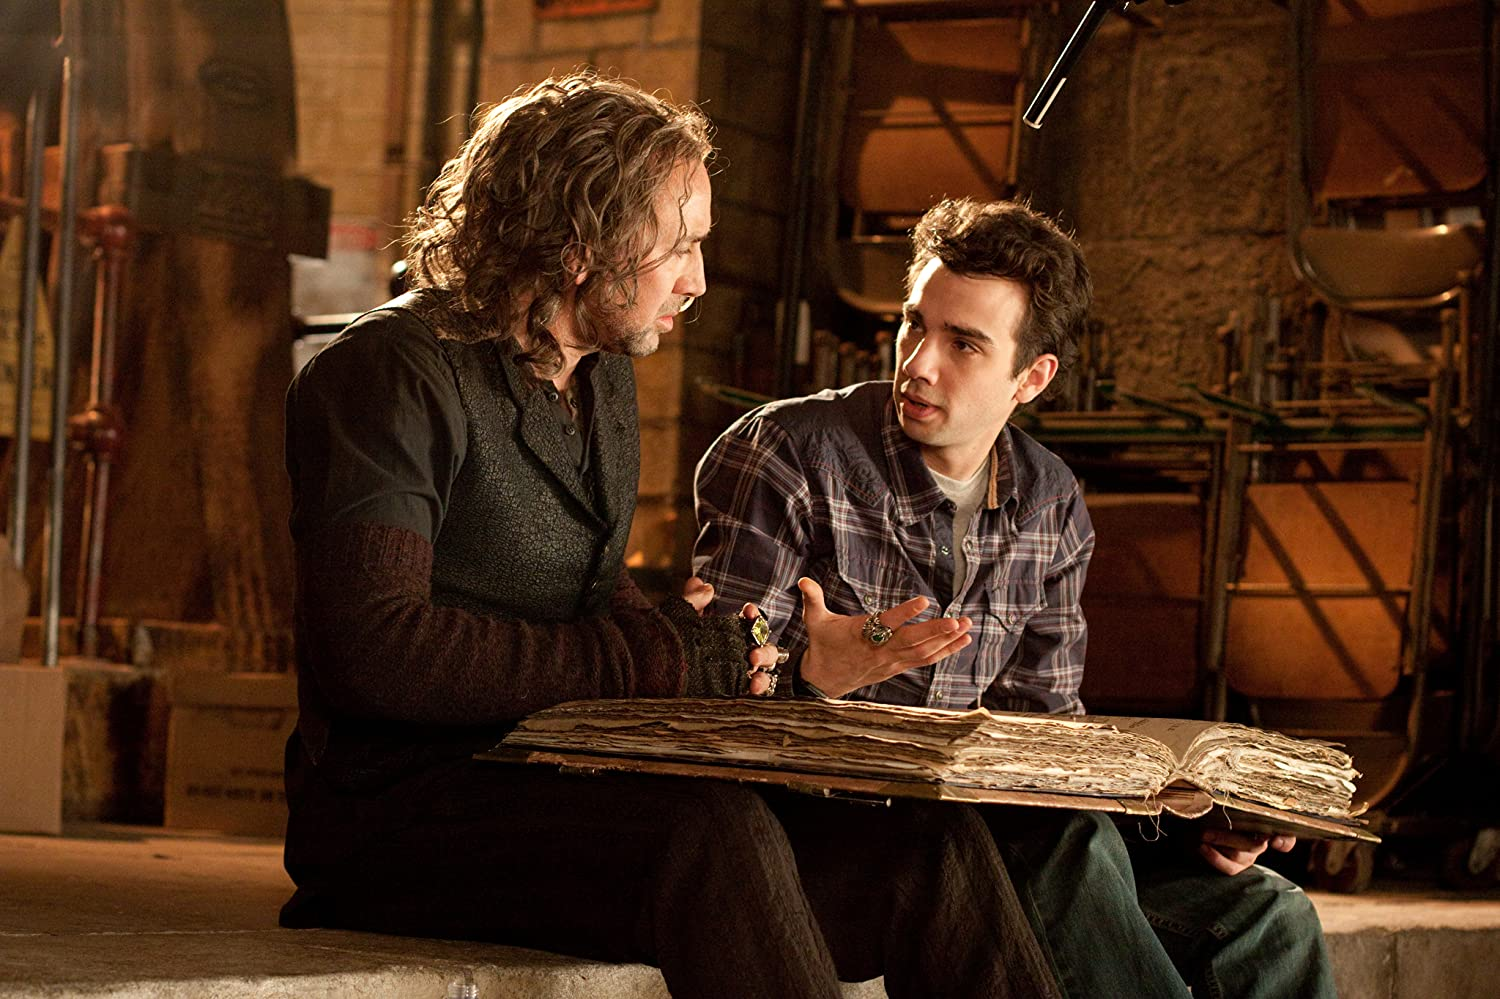 Nicolas Cage and Jay Baruchel in The Sorcerer's Apprentice (2010)